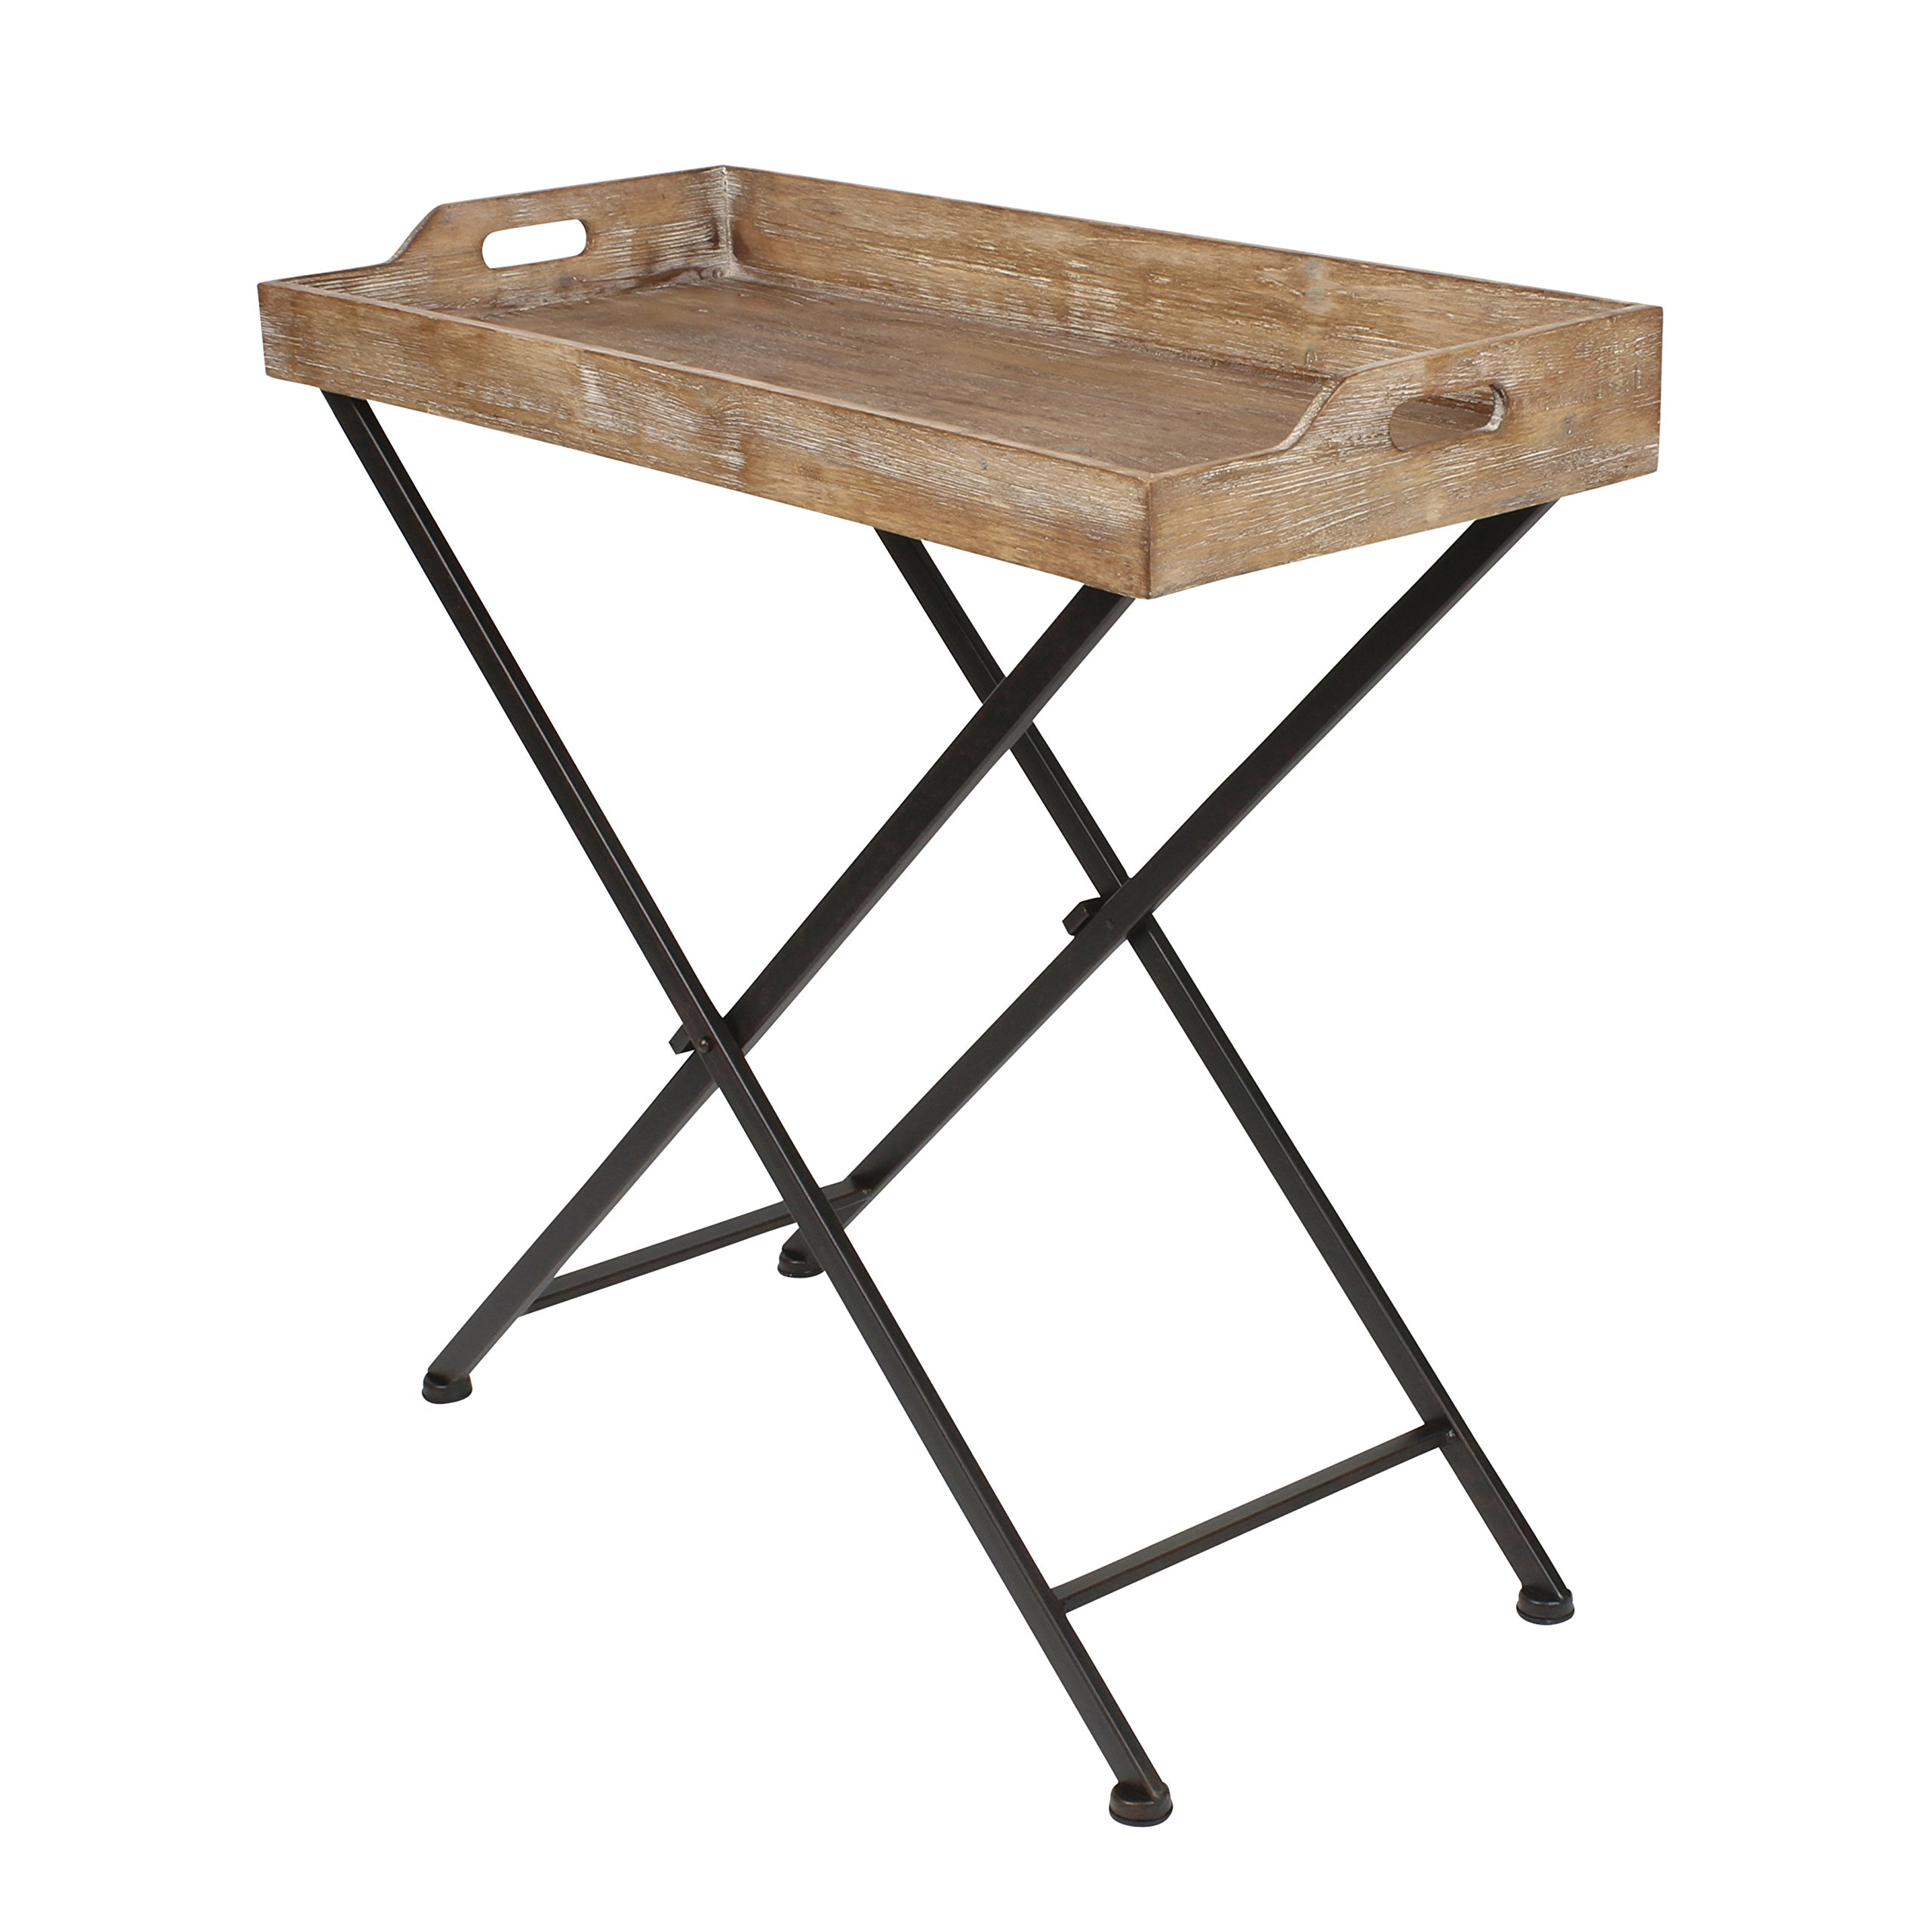 Kate and Laurel Marmora Metal Tray Table with Removable Wood Tray Top by Kate and Laurel